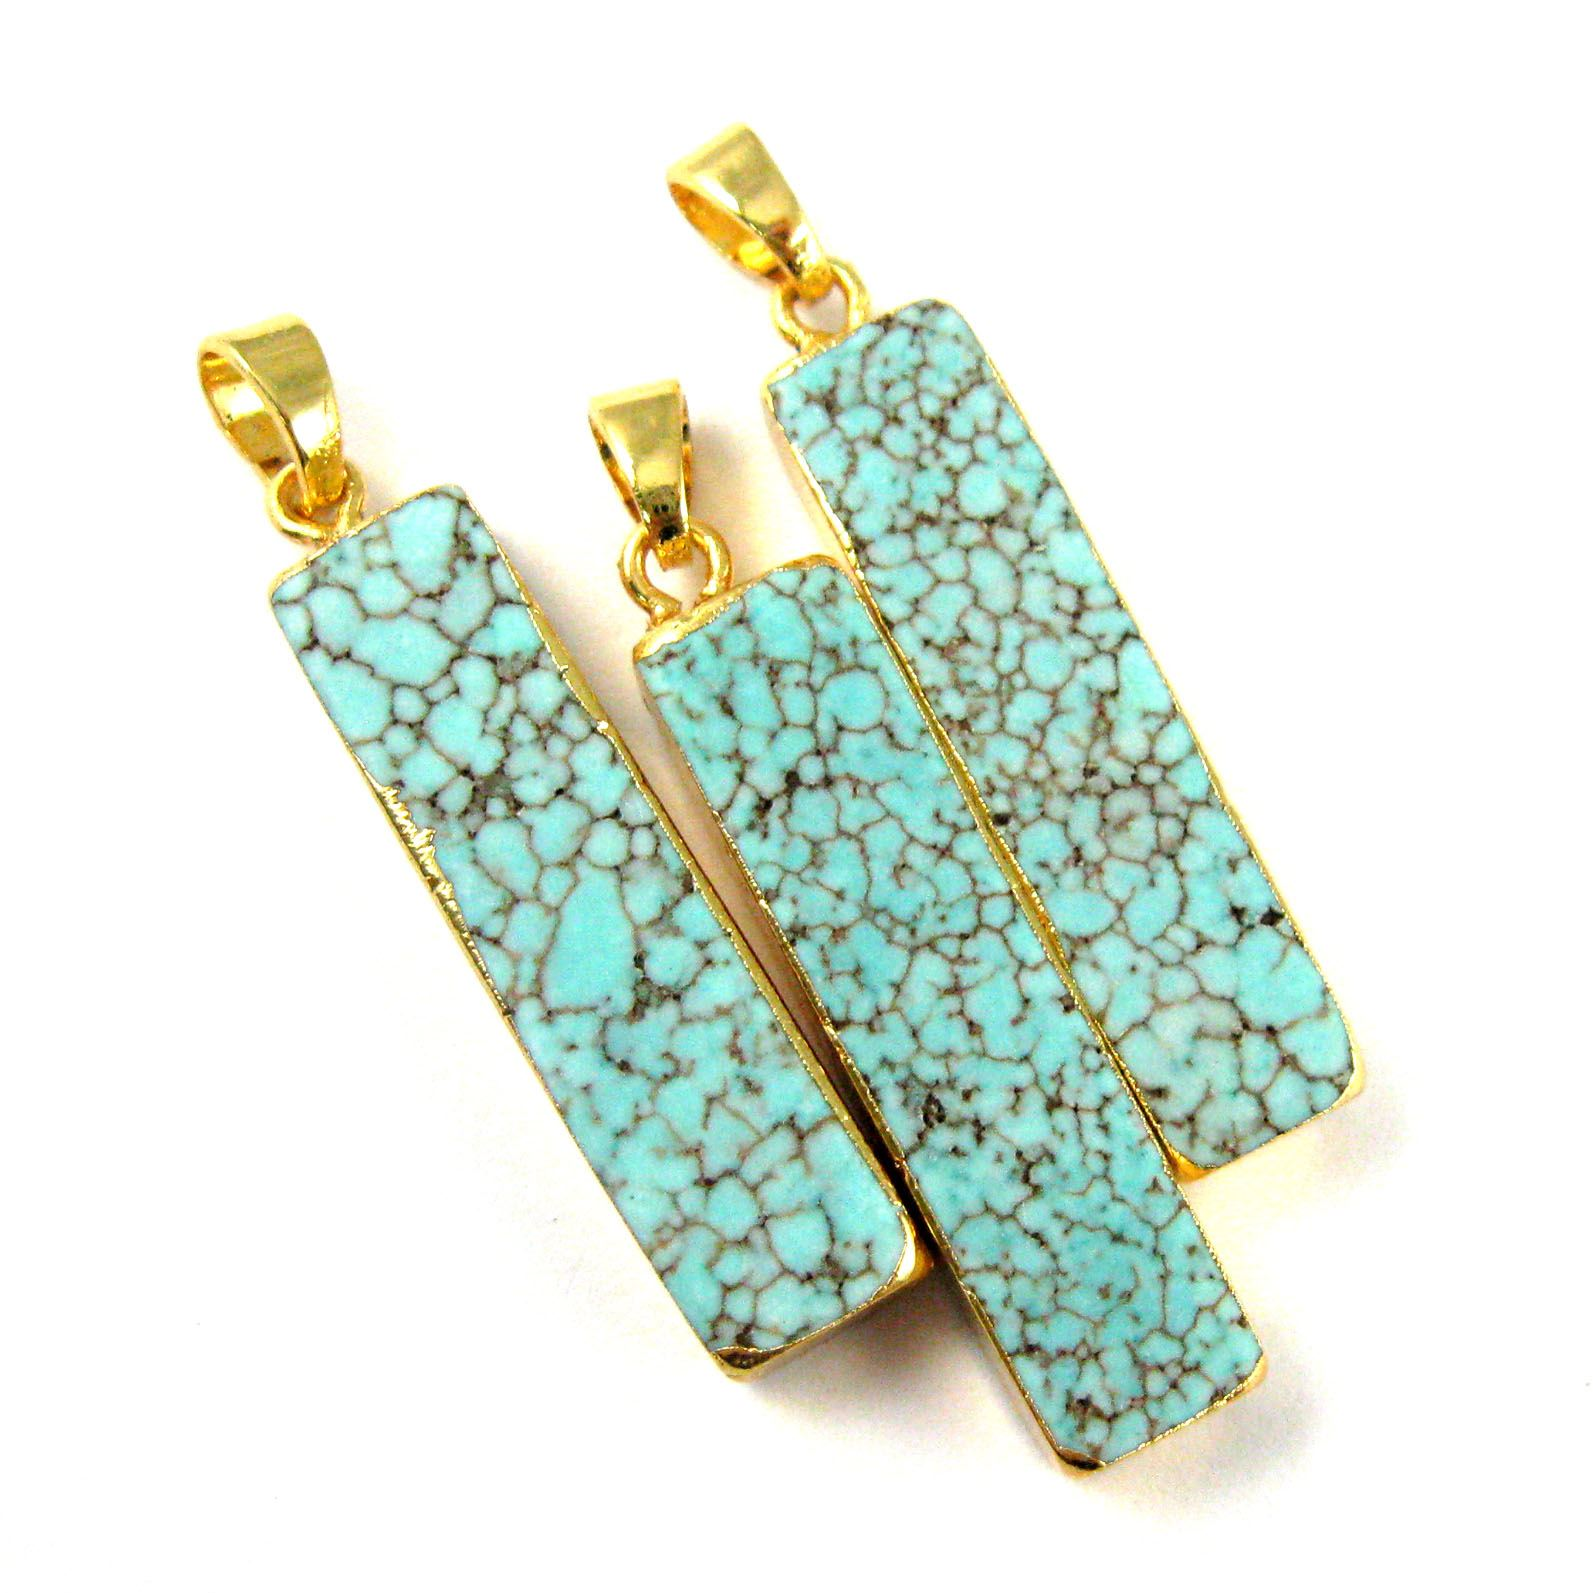 Turquoise Bar Pendant, Long Gem Bar Pendant, Turquoise Nature Stone Gold plated, Gold Dipped Gemstone-34mm